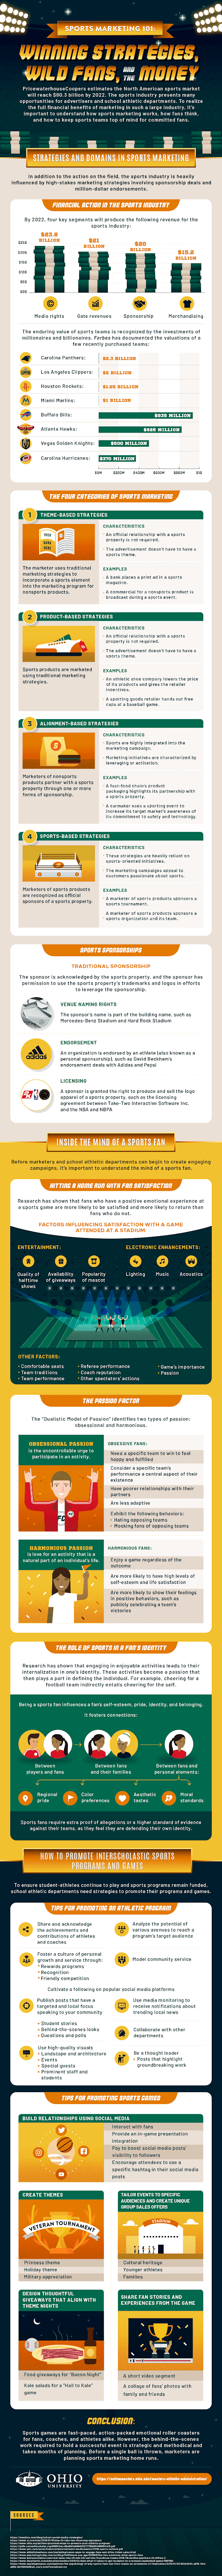 Winning Strategies, Wild Fans, and the Money #infographic